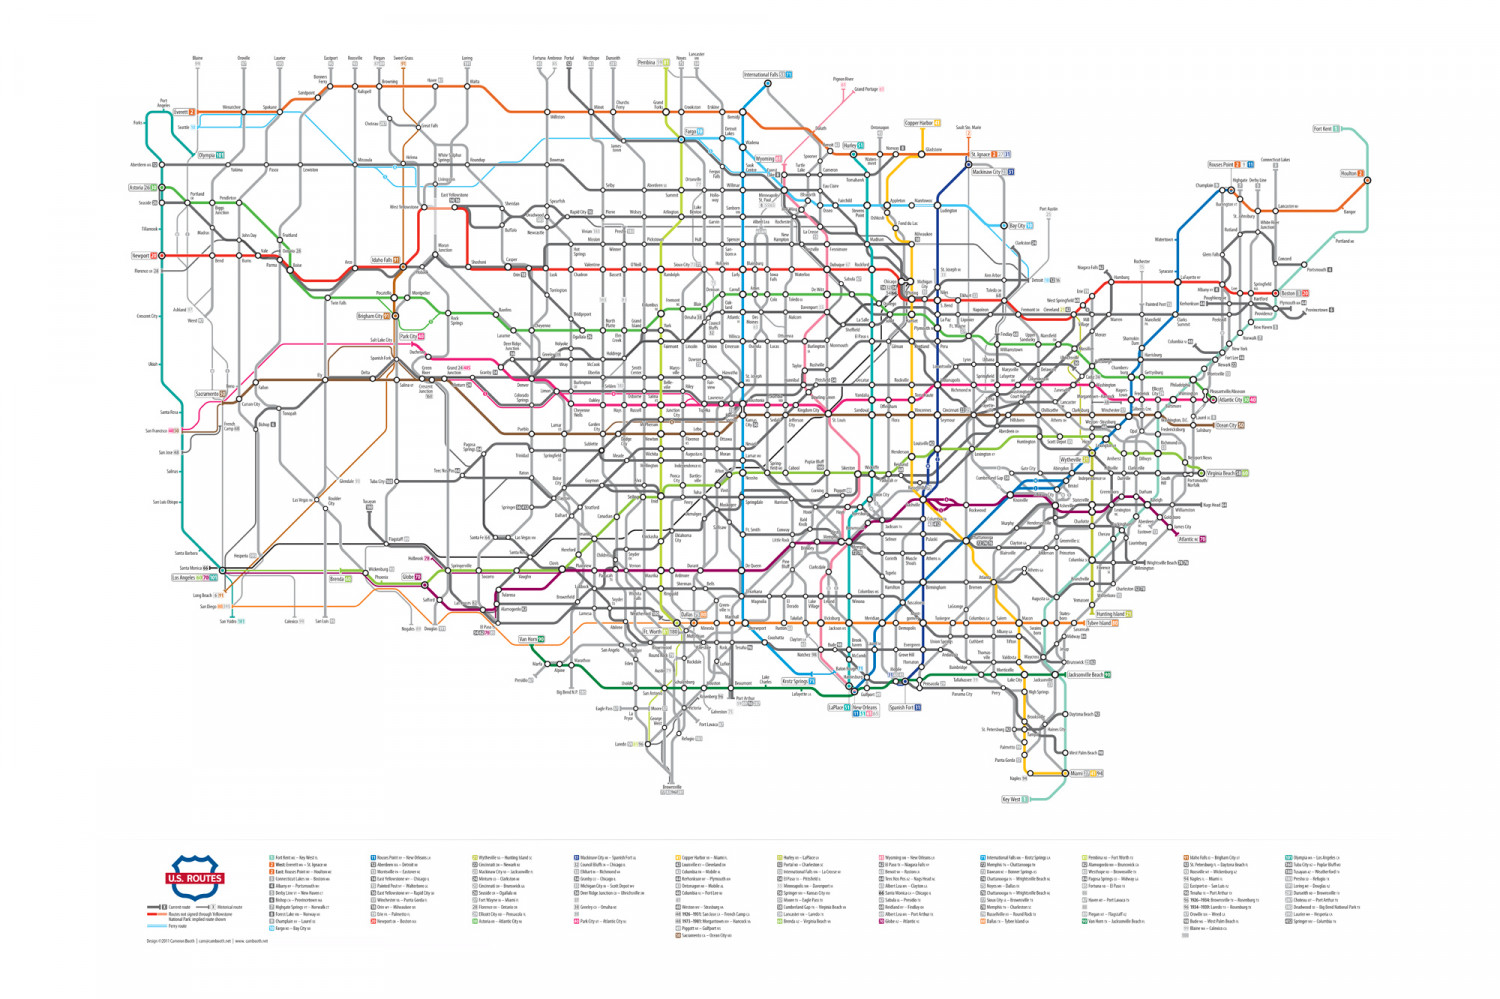 US Numbered Highways As A Subway Map Visually - Map of us with highways